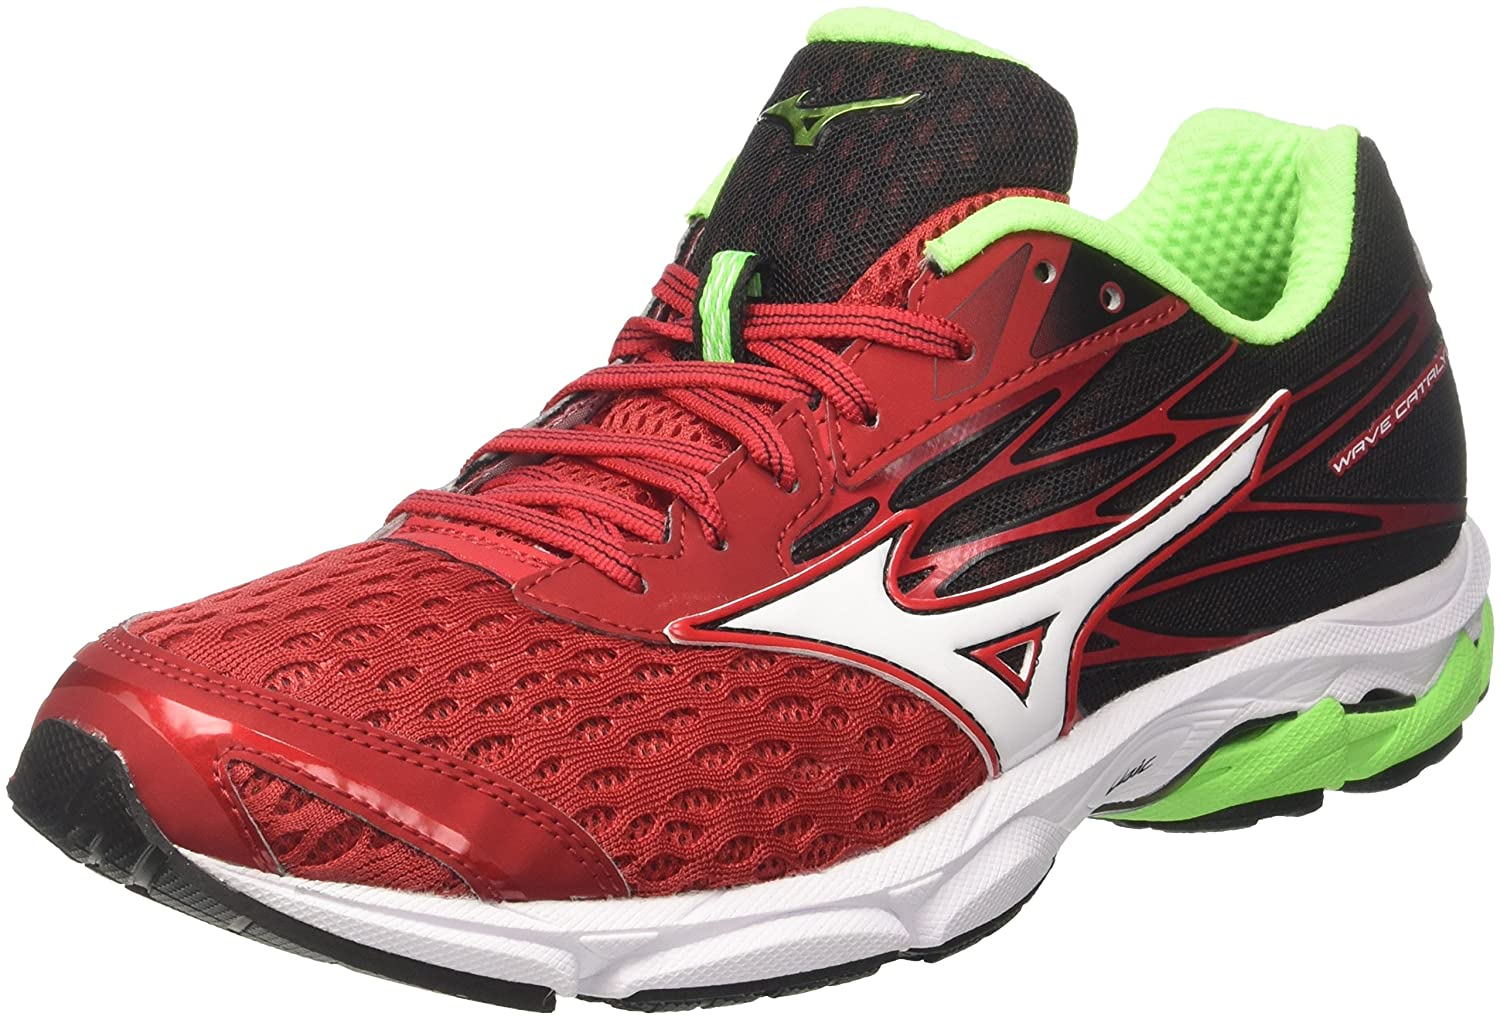 Mizuno Wave Catalyst 2, Zapatillas de Running para Hombre 47 EU|Multicolor (Formulaone/White/Black 02)